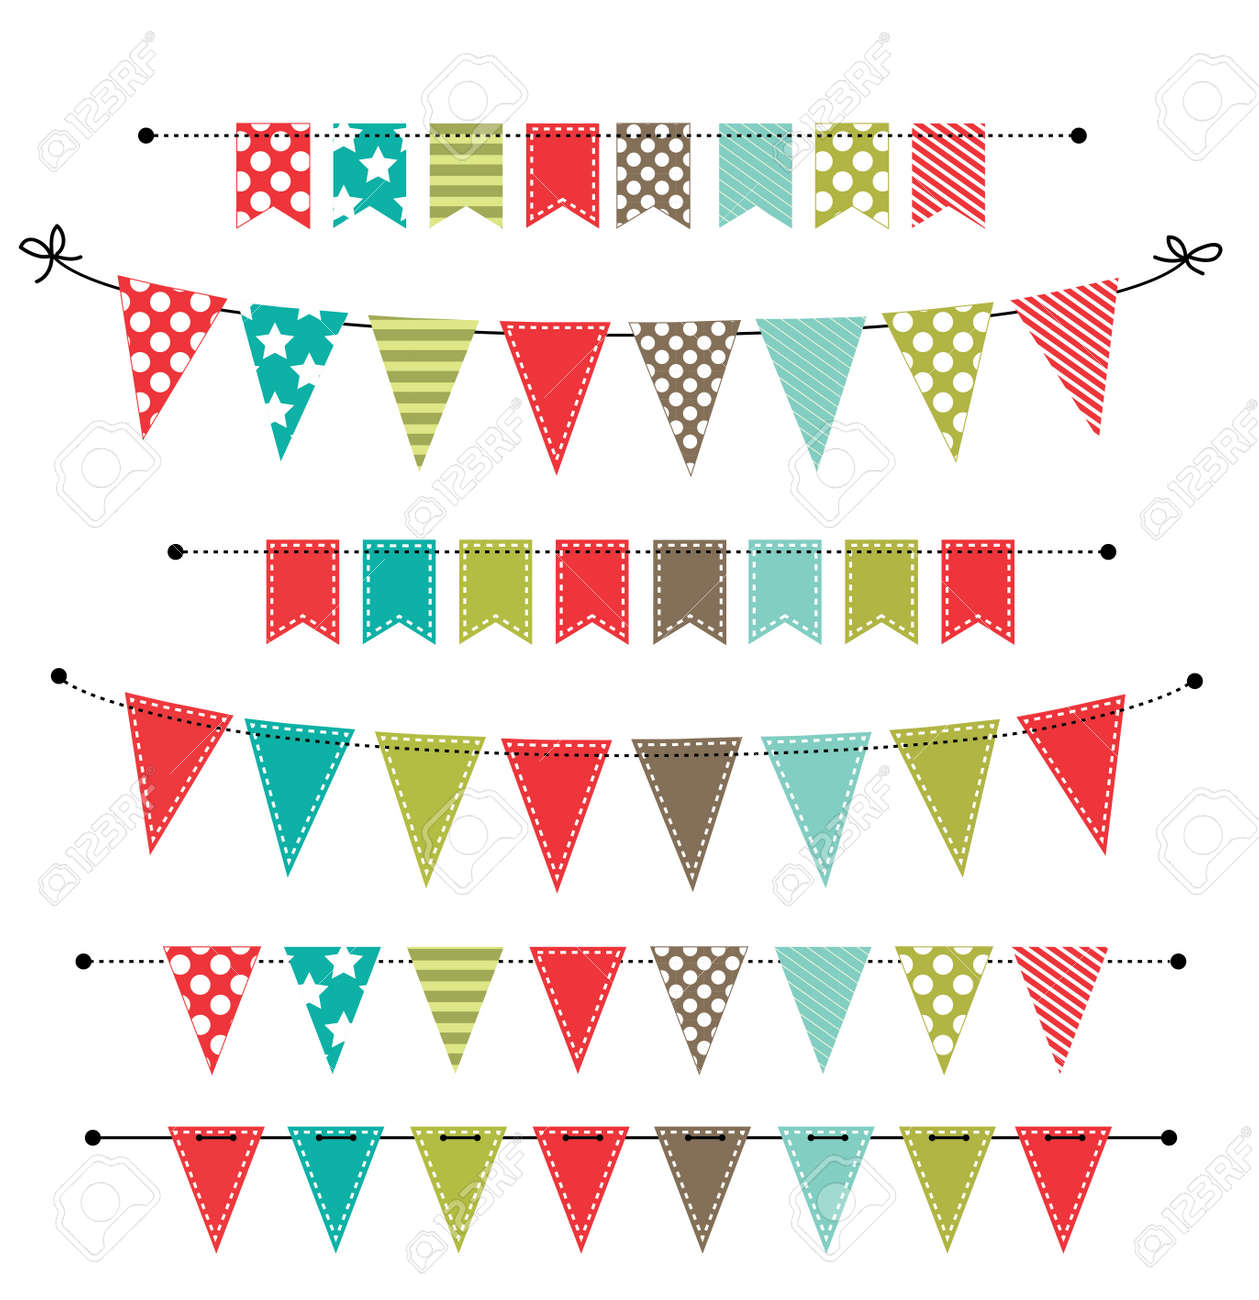 hight resolution of christmas banner bunting or flags on transparent background for scrapbooking vector format stock